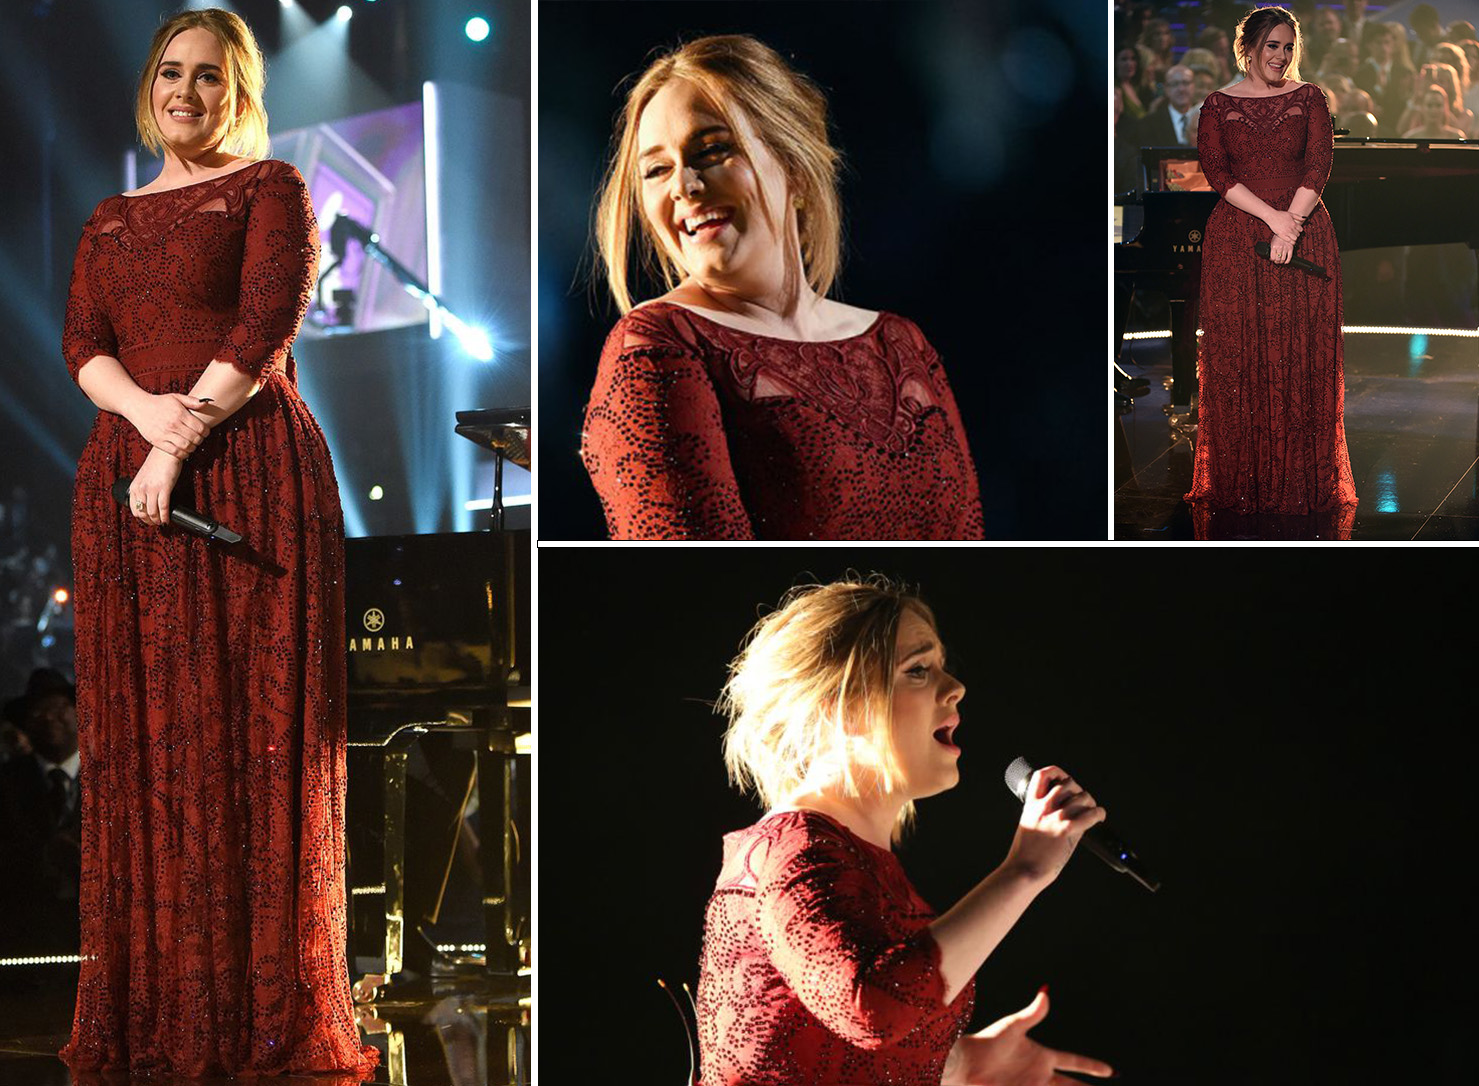 Adele's red gown